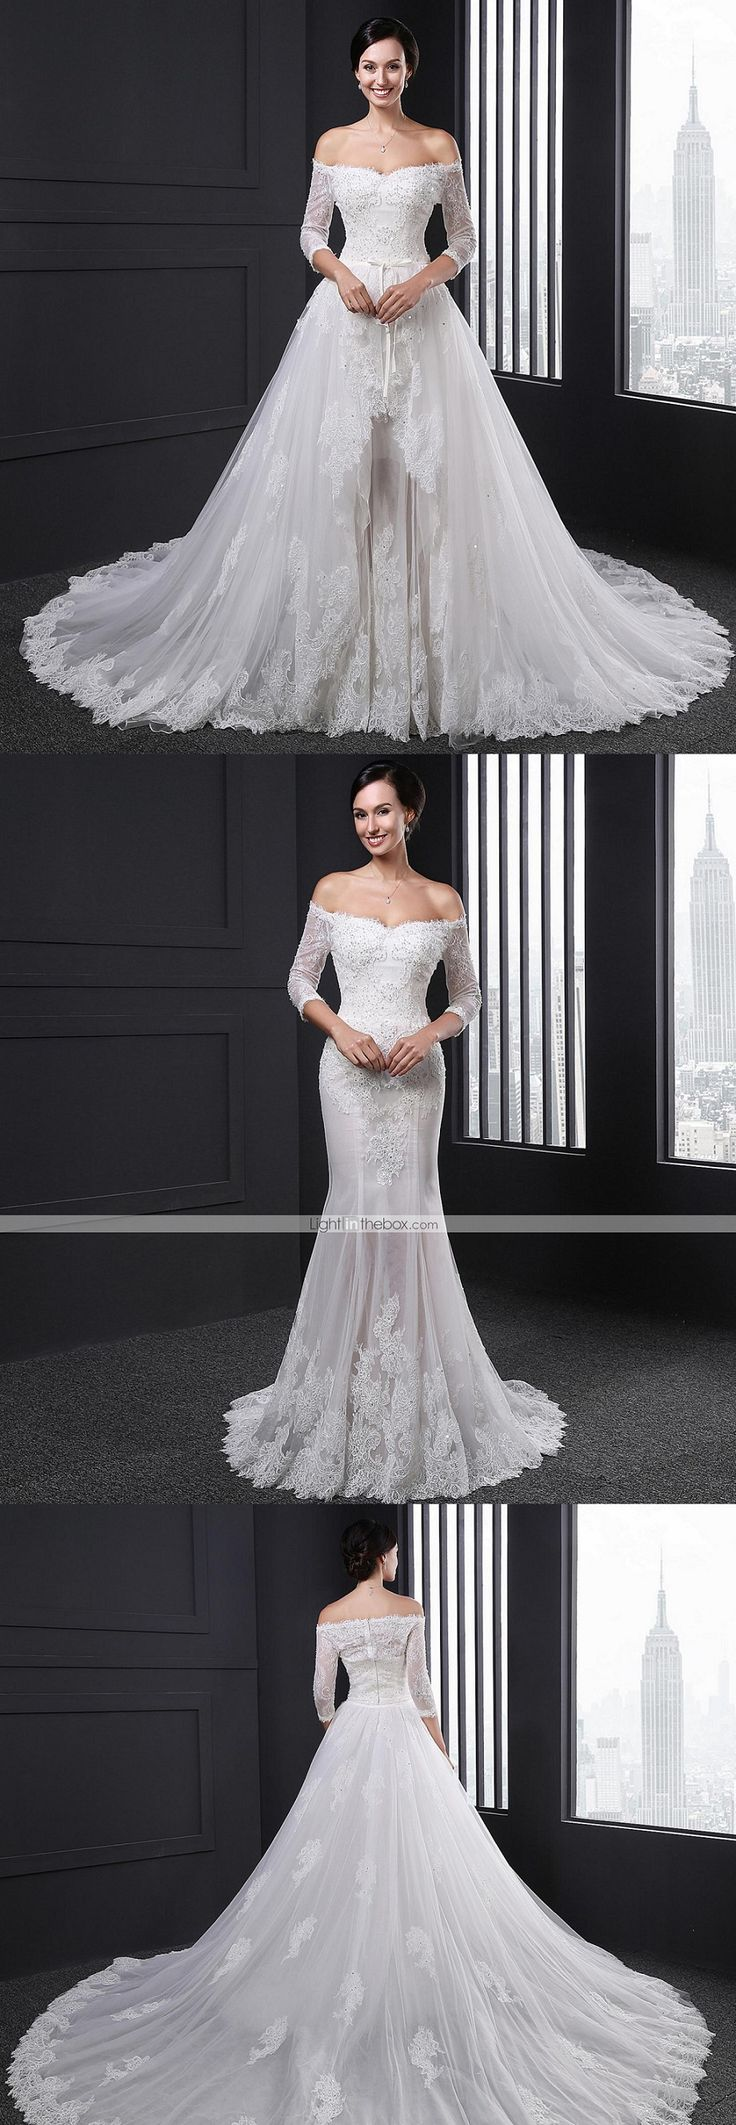 1000 ideas about ball gown wedding on pinterest wedding for How much to spend on wedding dress